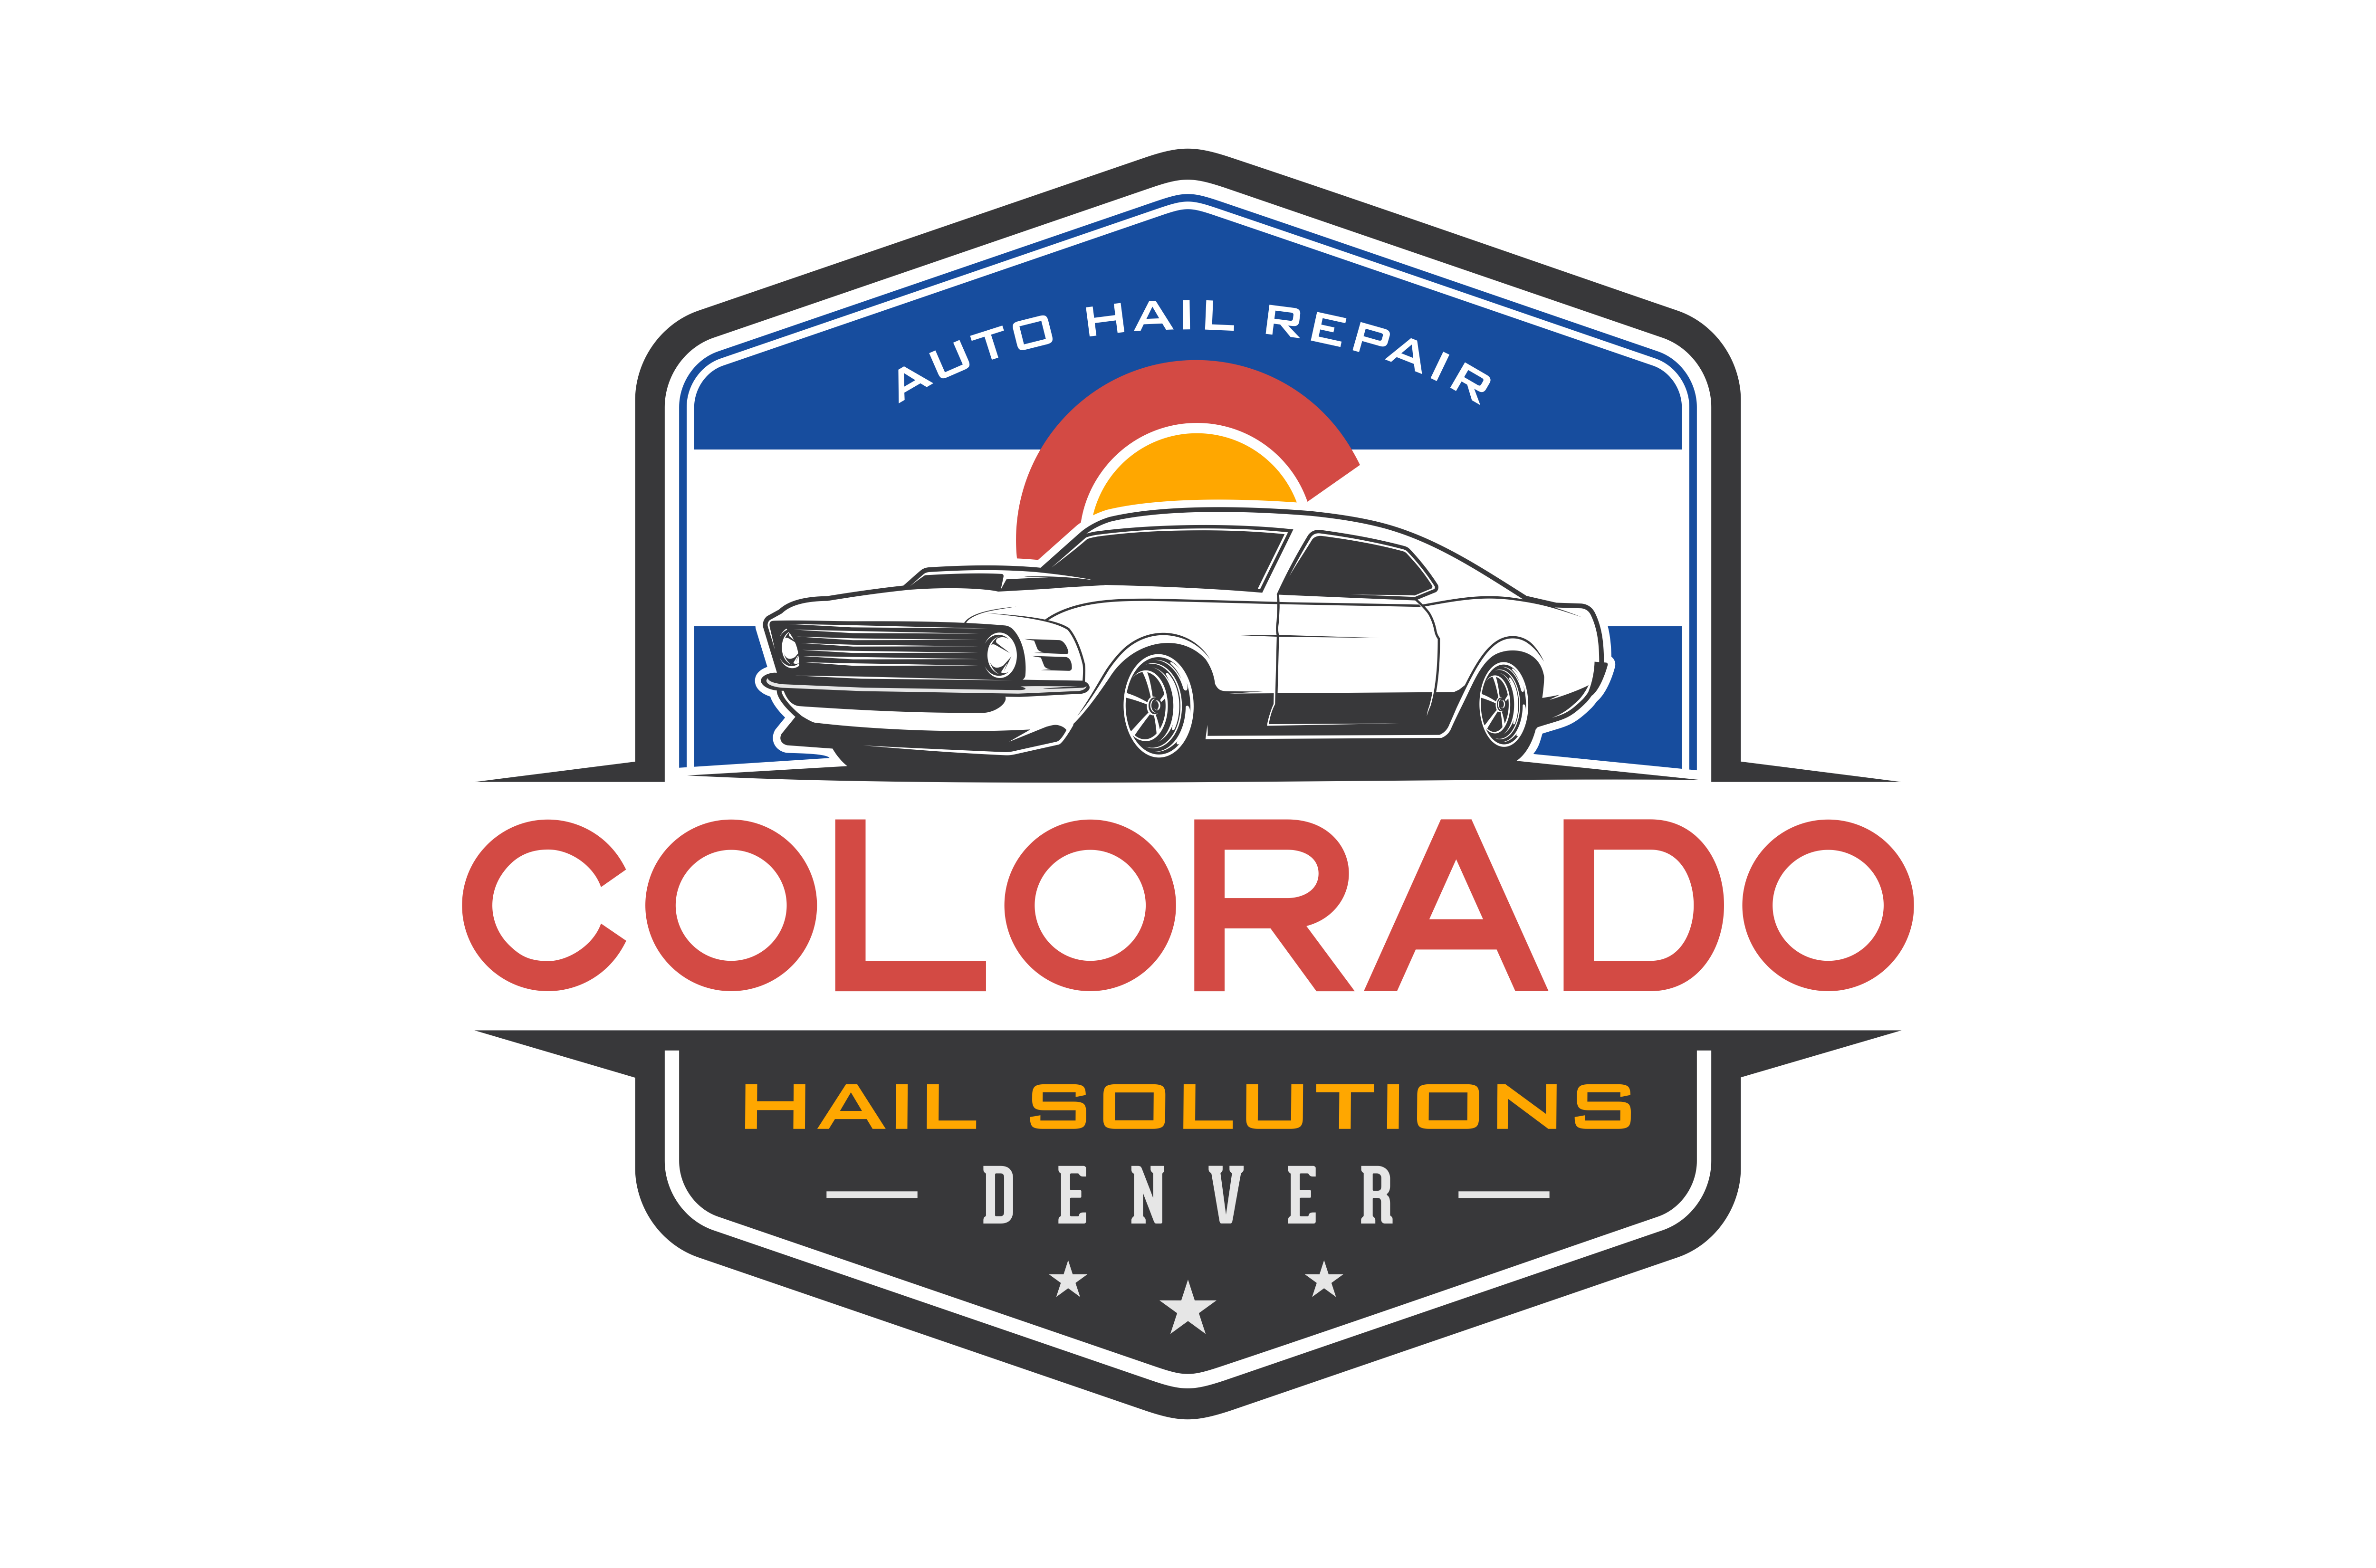 Colorado Hail Solutions Denver Colorado